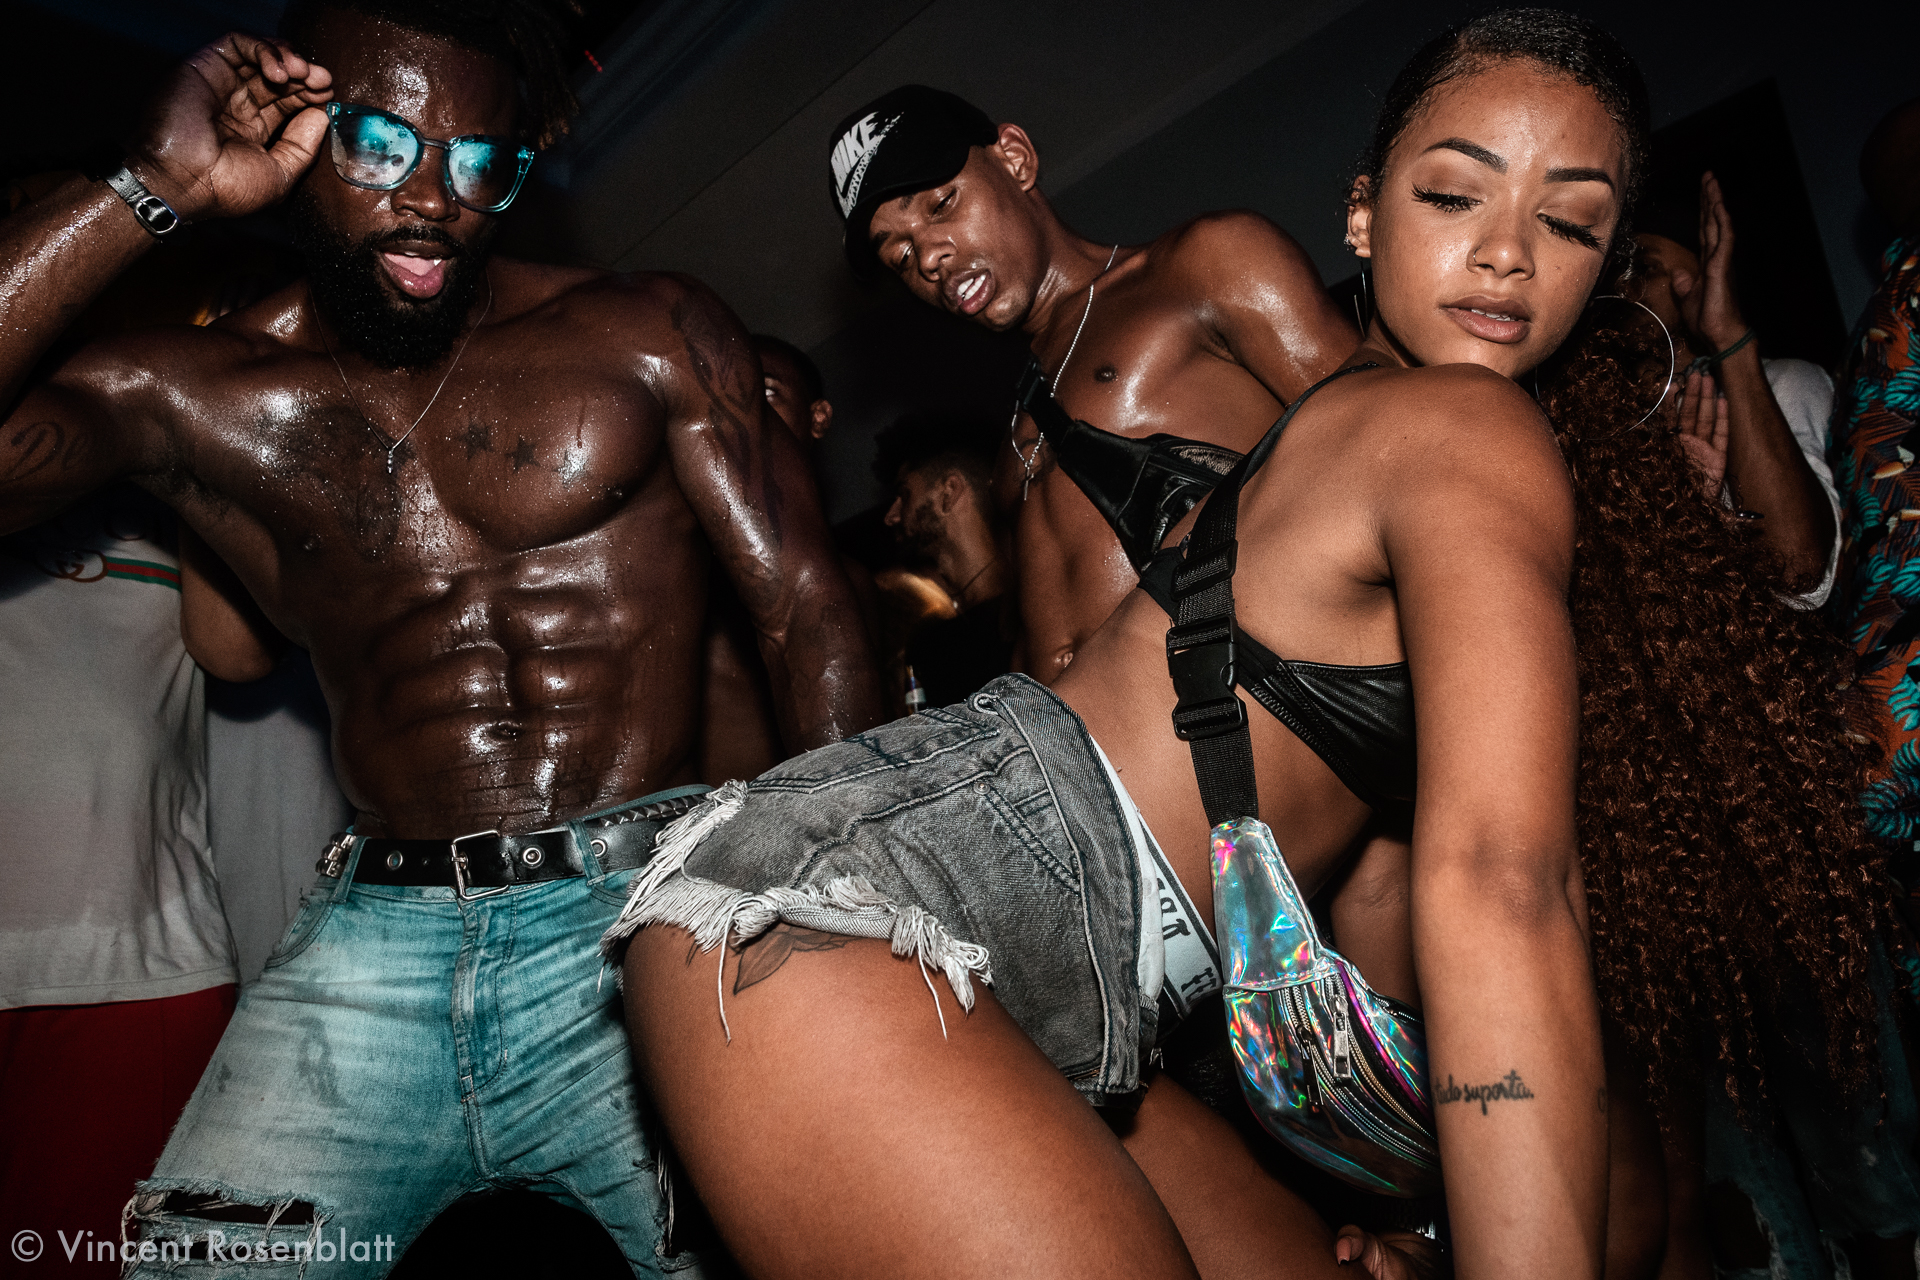 Massengo & Isabelly - urban dancers & models at the  Black Lux party - Santa Teresa, Rio de Janeiro 2018.